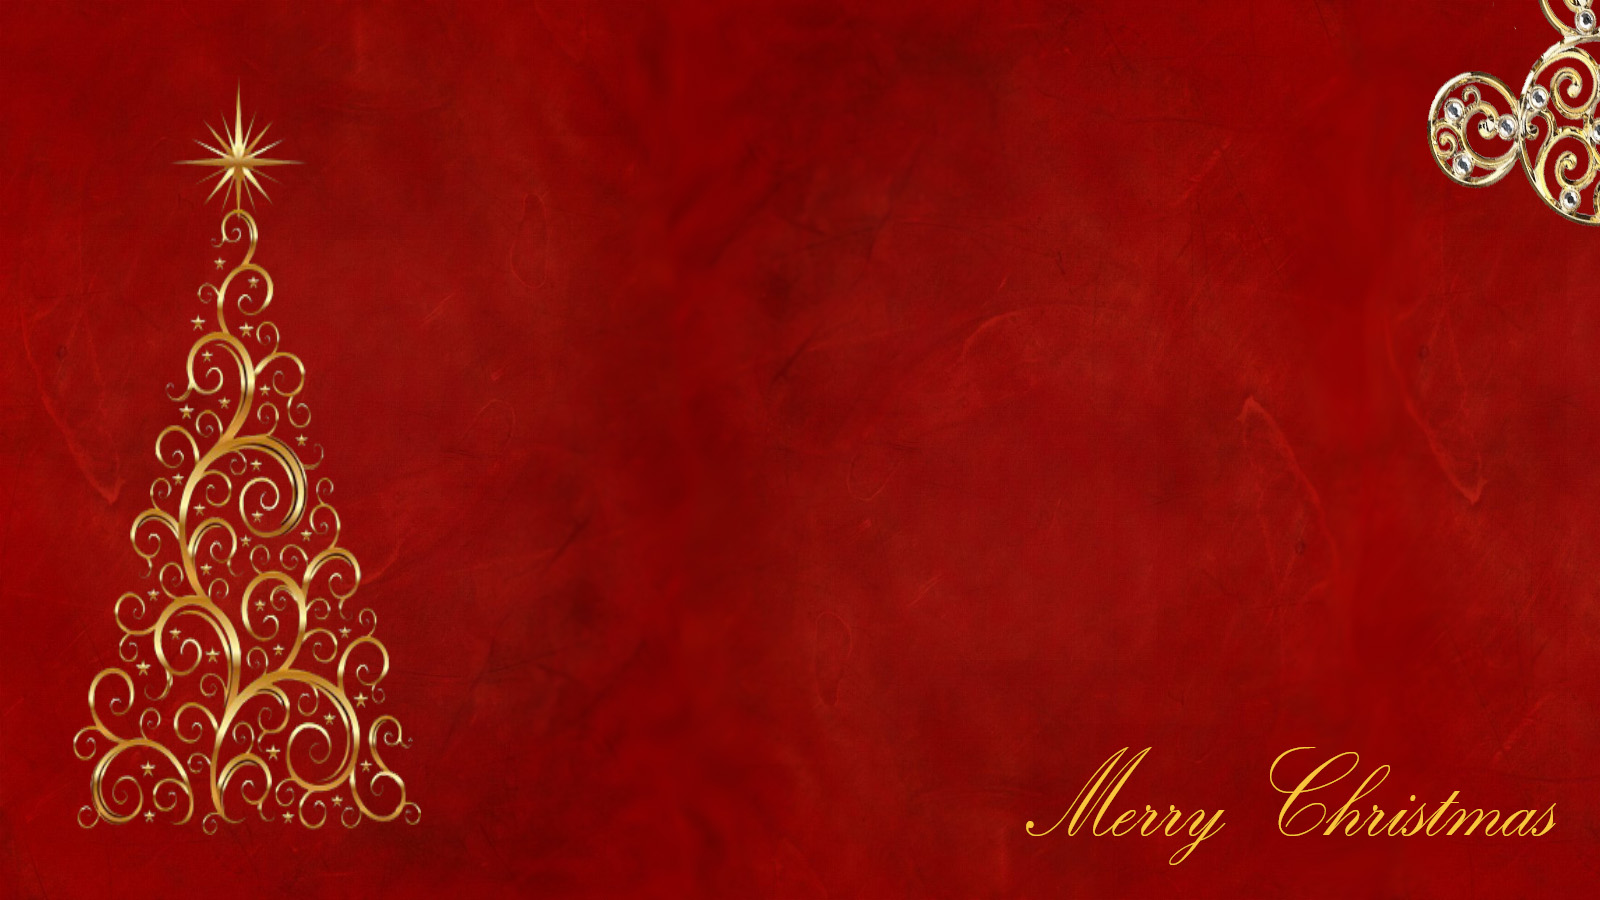 Christmas Background Red Christmas Backgrounds Red Christmas 1600x900